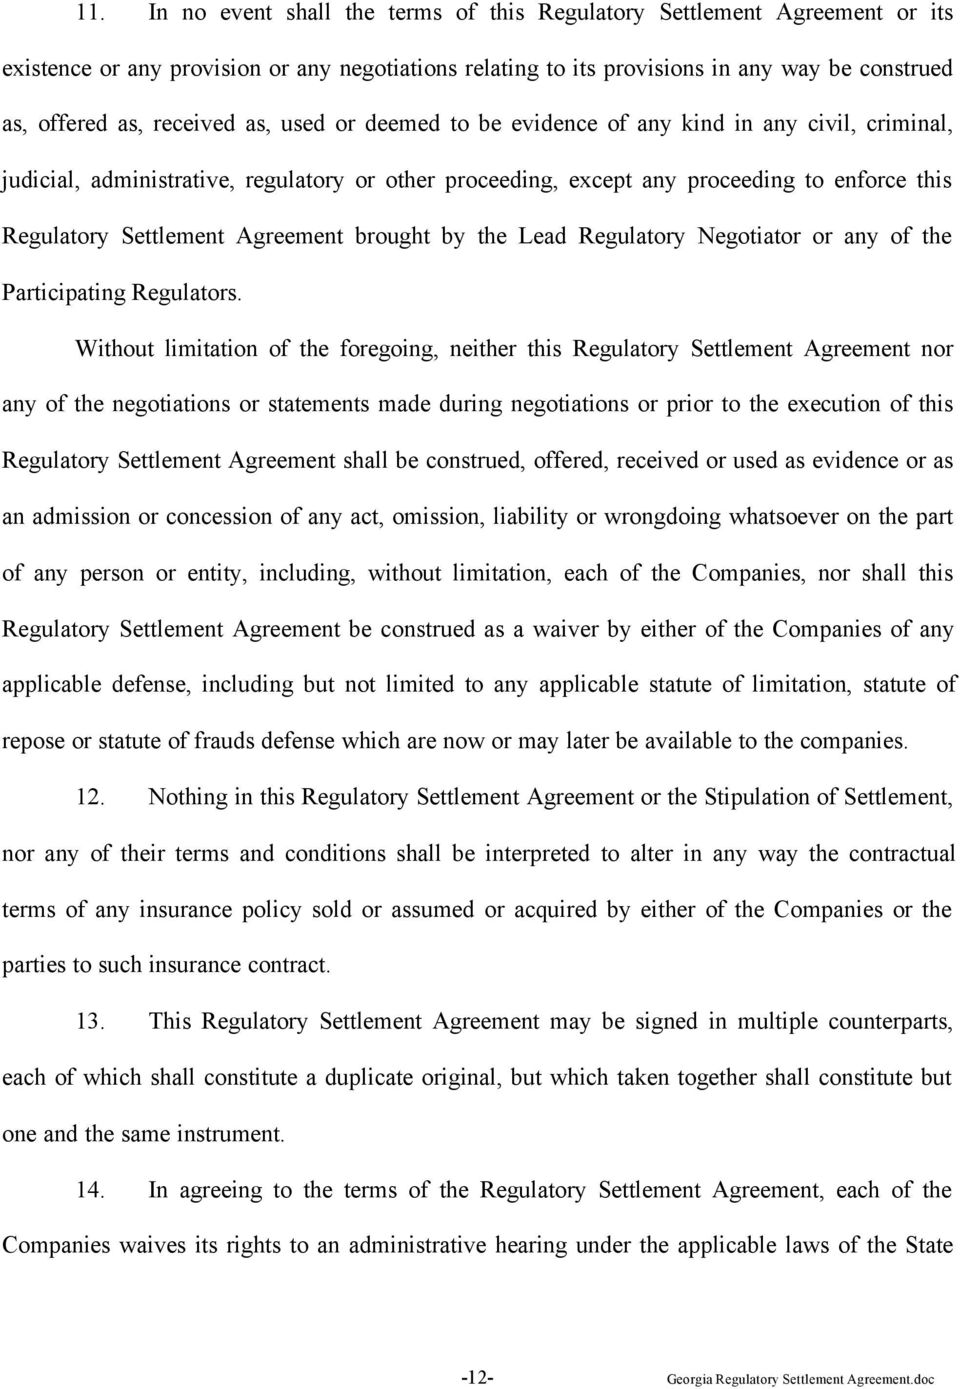 Agreement brought by the Lead Regulatory Negotiator or any of the Participating Regulators.